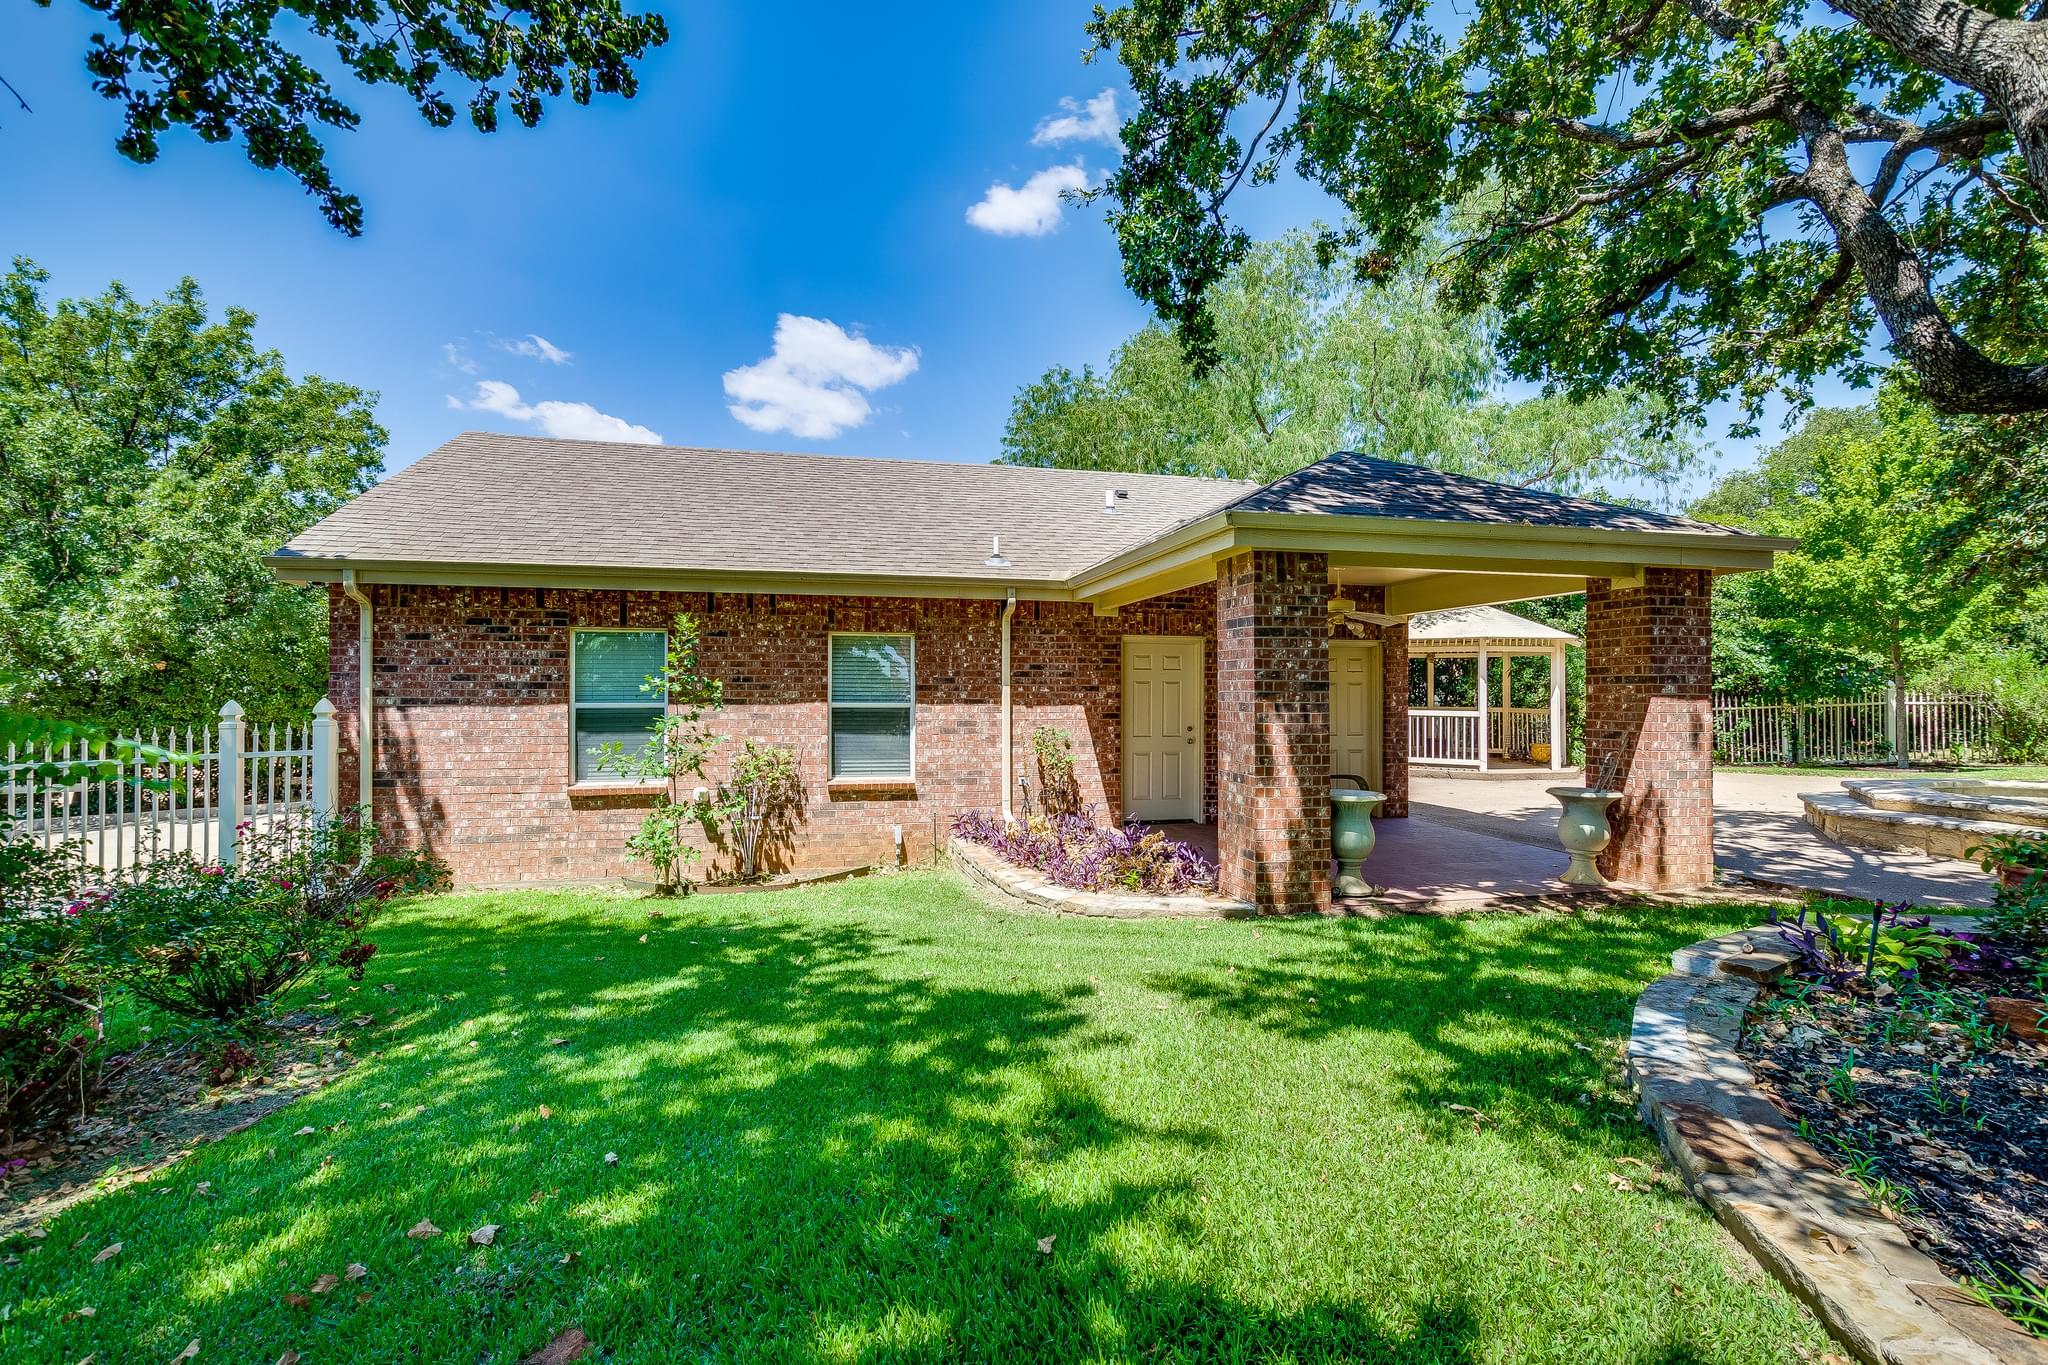 4503 Equestrian Way Picture The Sell